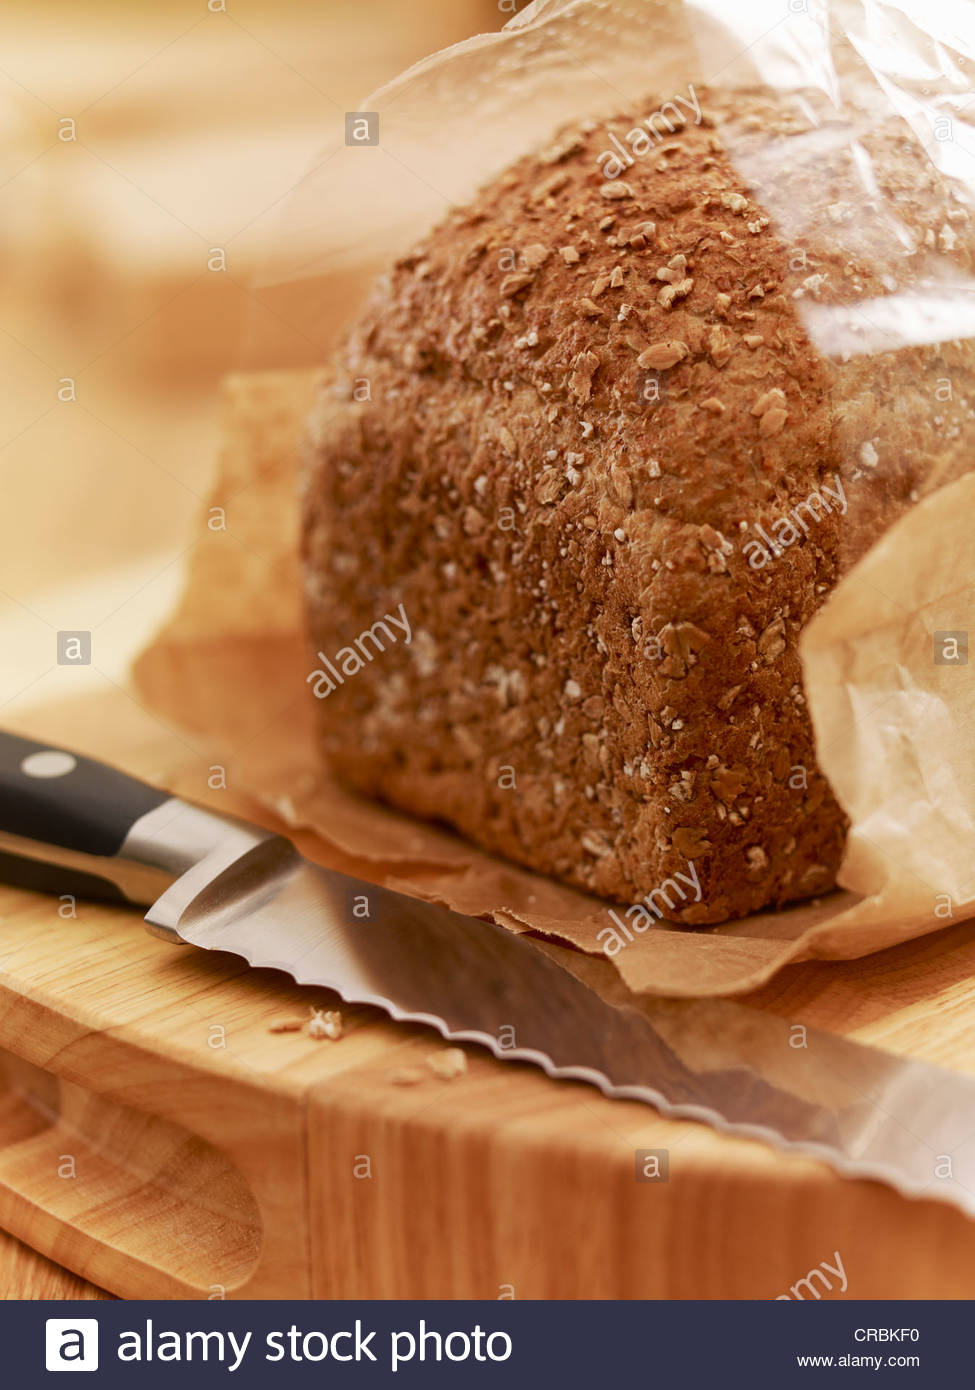 Close up of knife and loaf of bread in wrapper - Stock Image